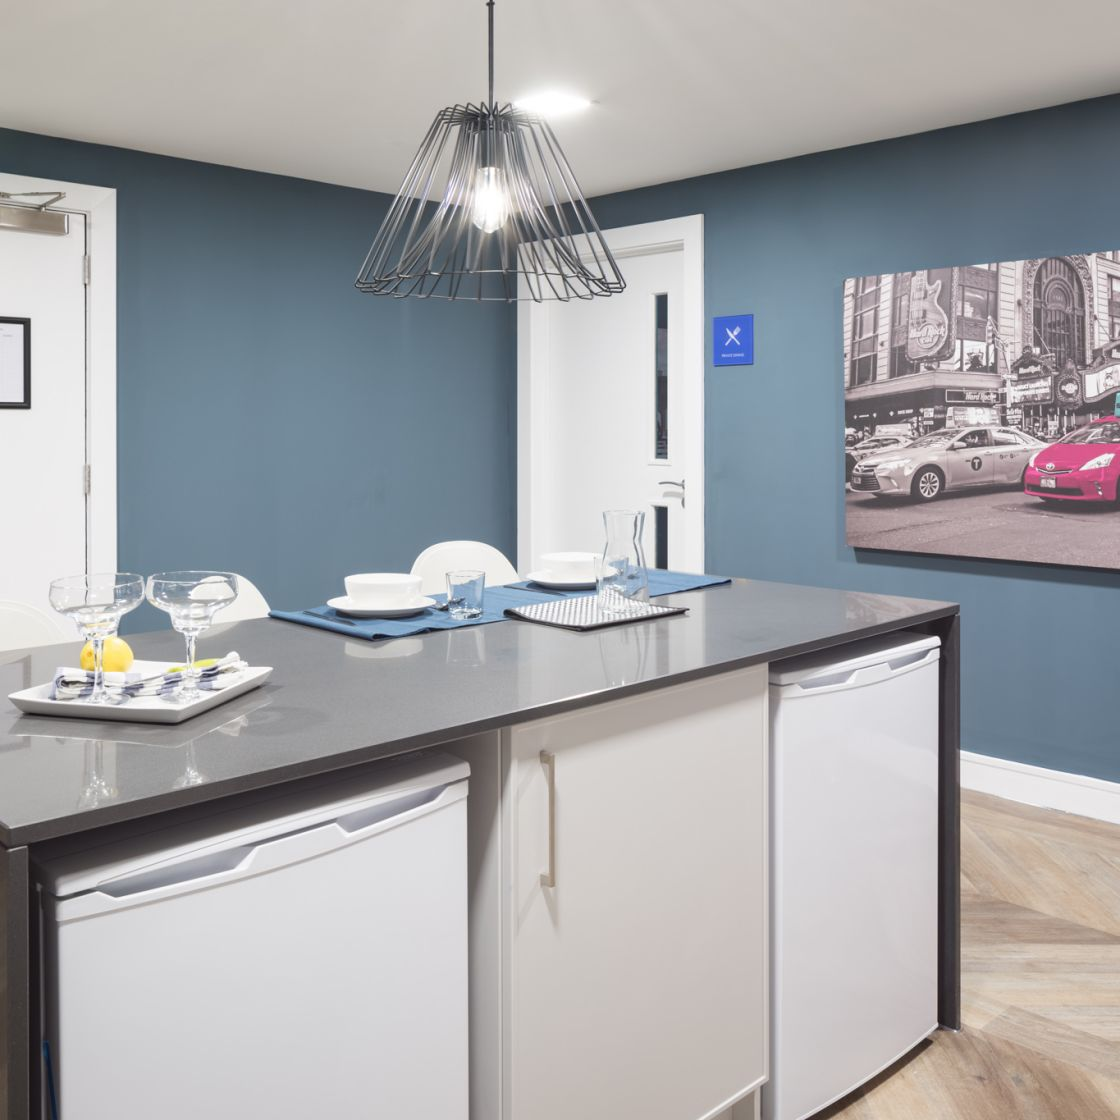 Mega Kitchen with large island. IconInc, The Ascent. Student Accommodation in Liverpool